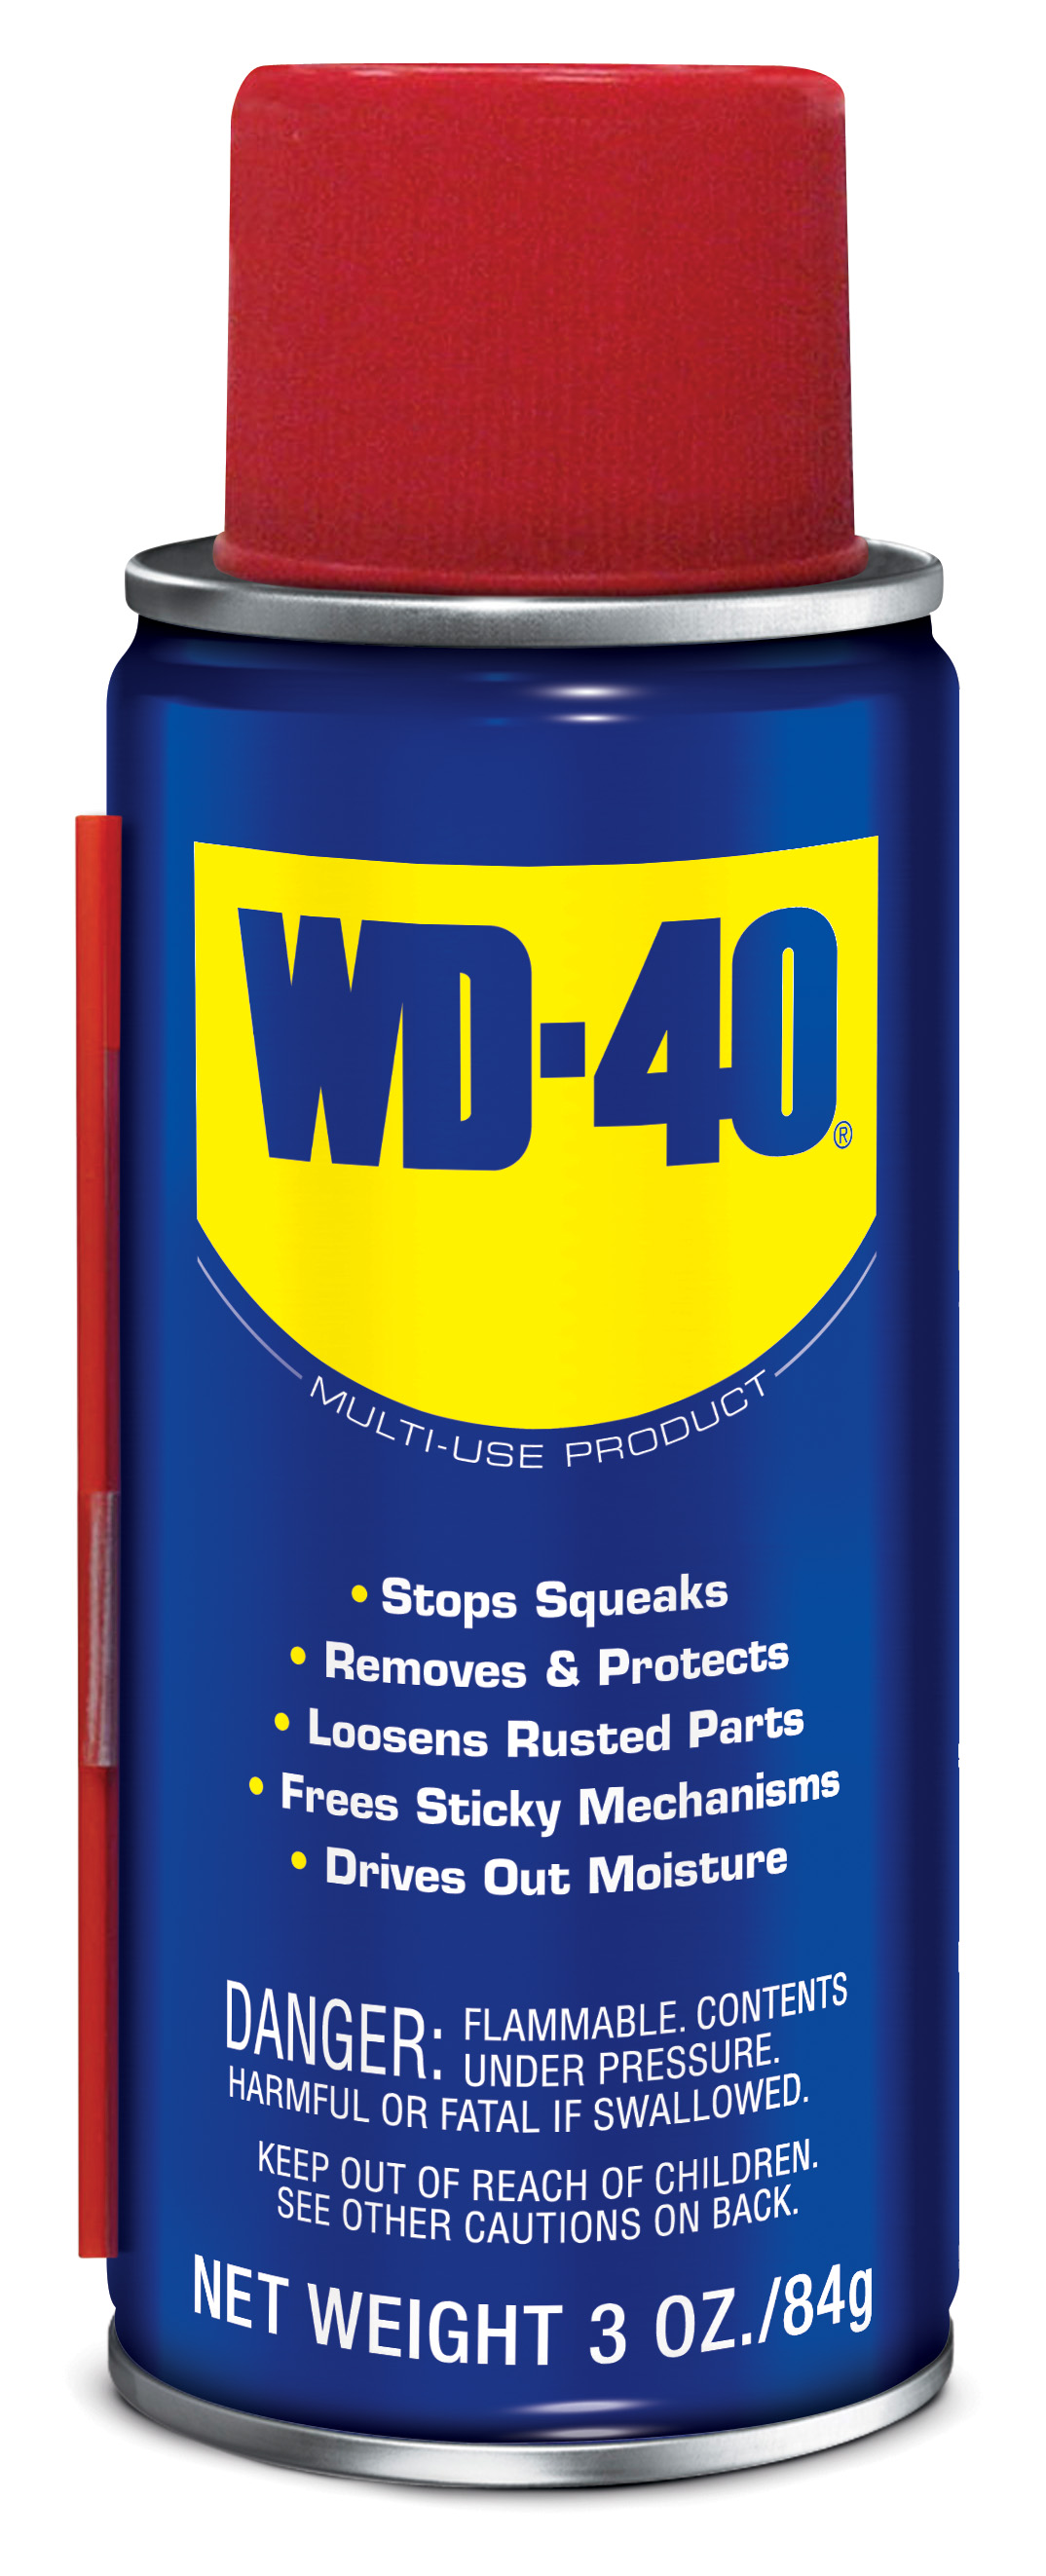 wd-40-smart-straw-voc-3oz-3d-can